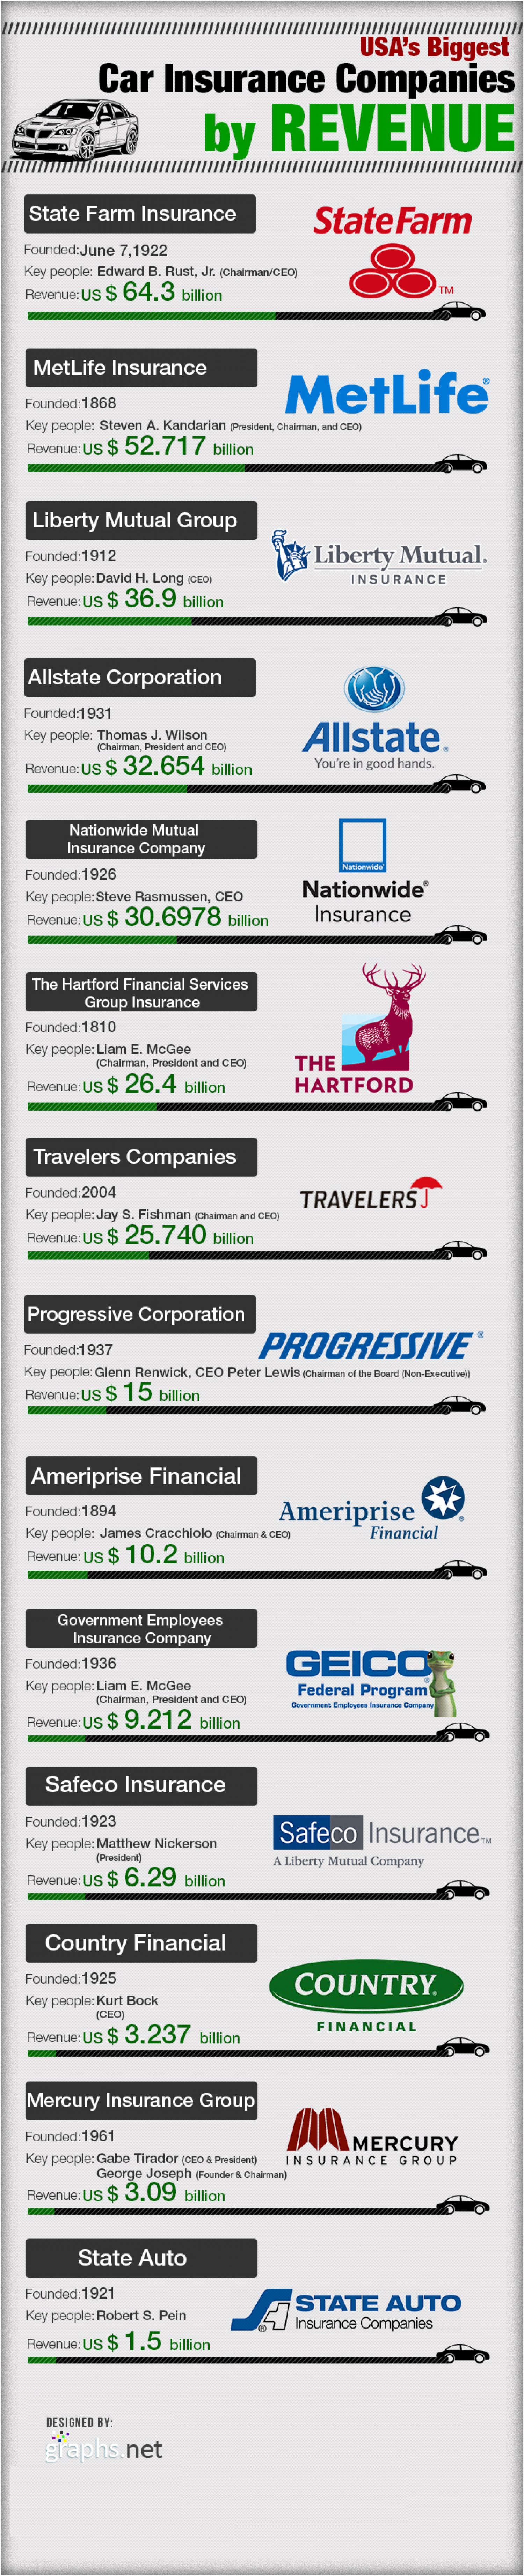 USA Car insurance companies by revenue Infographic